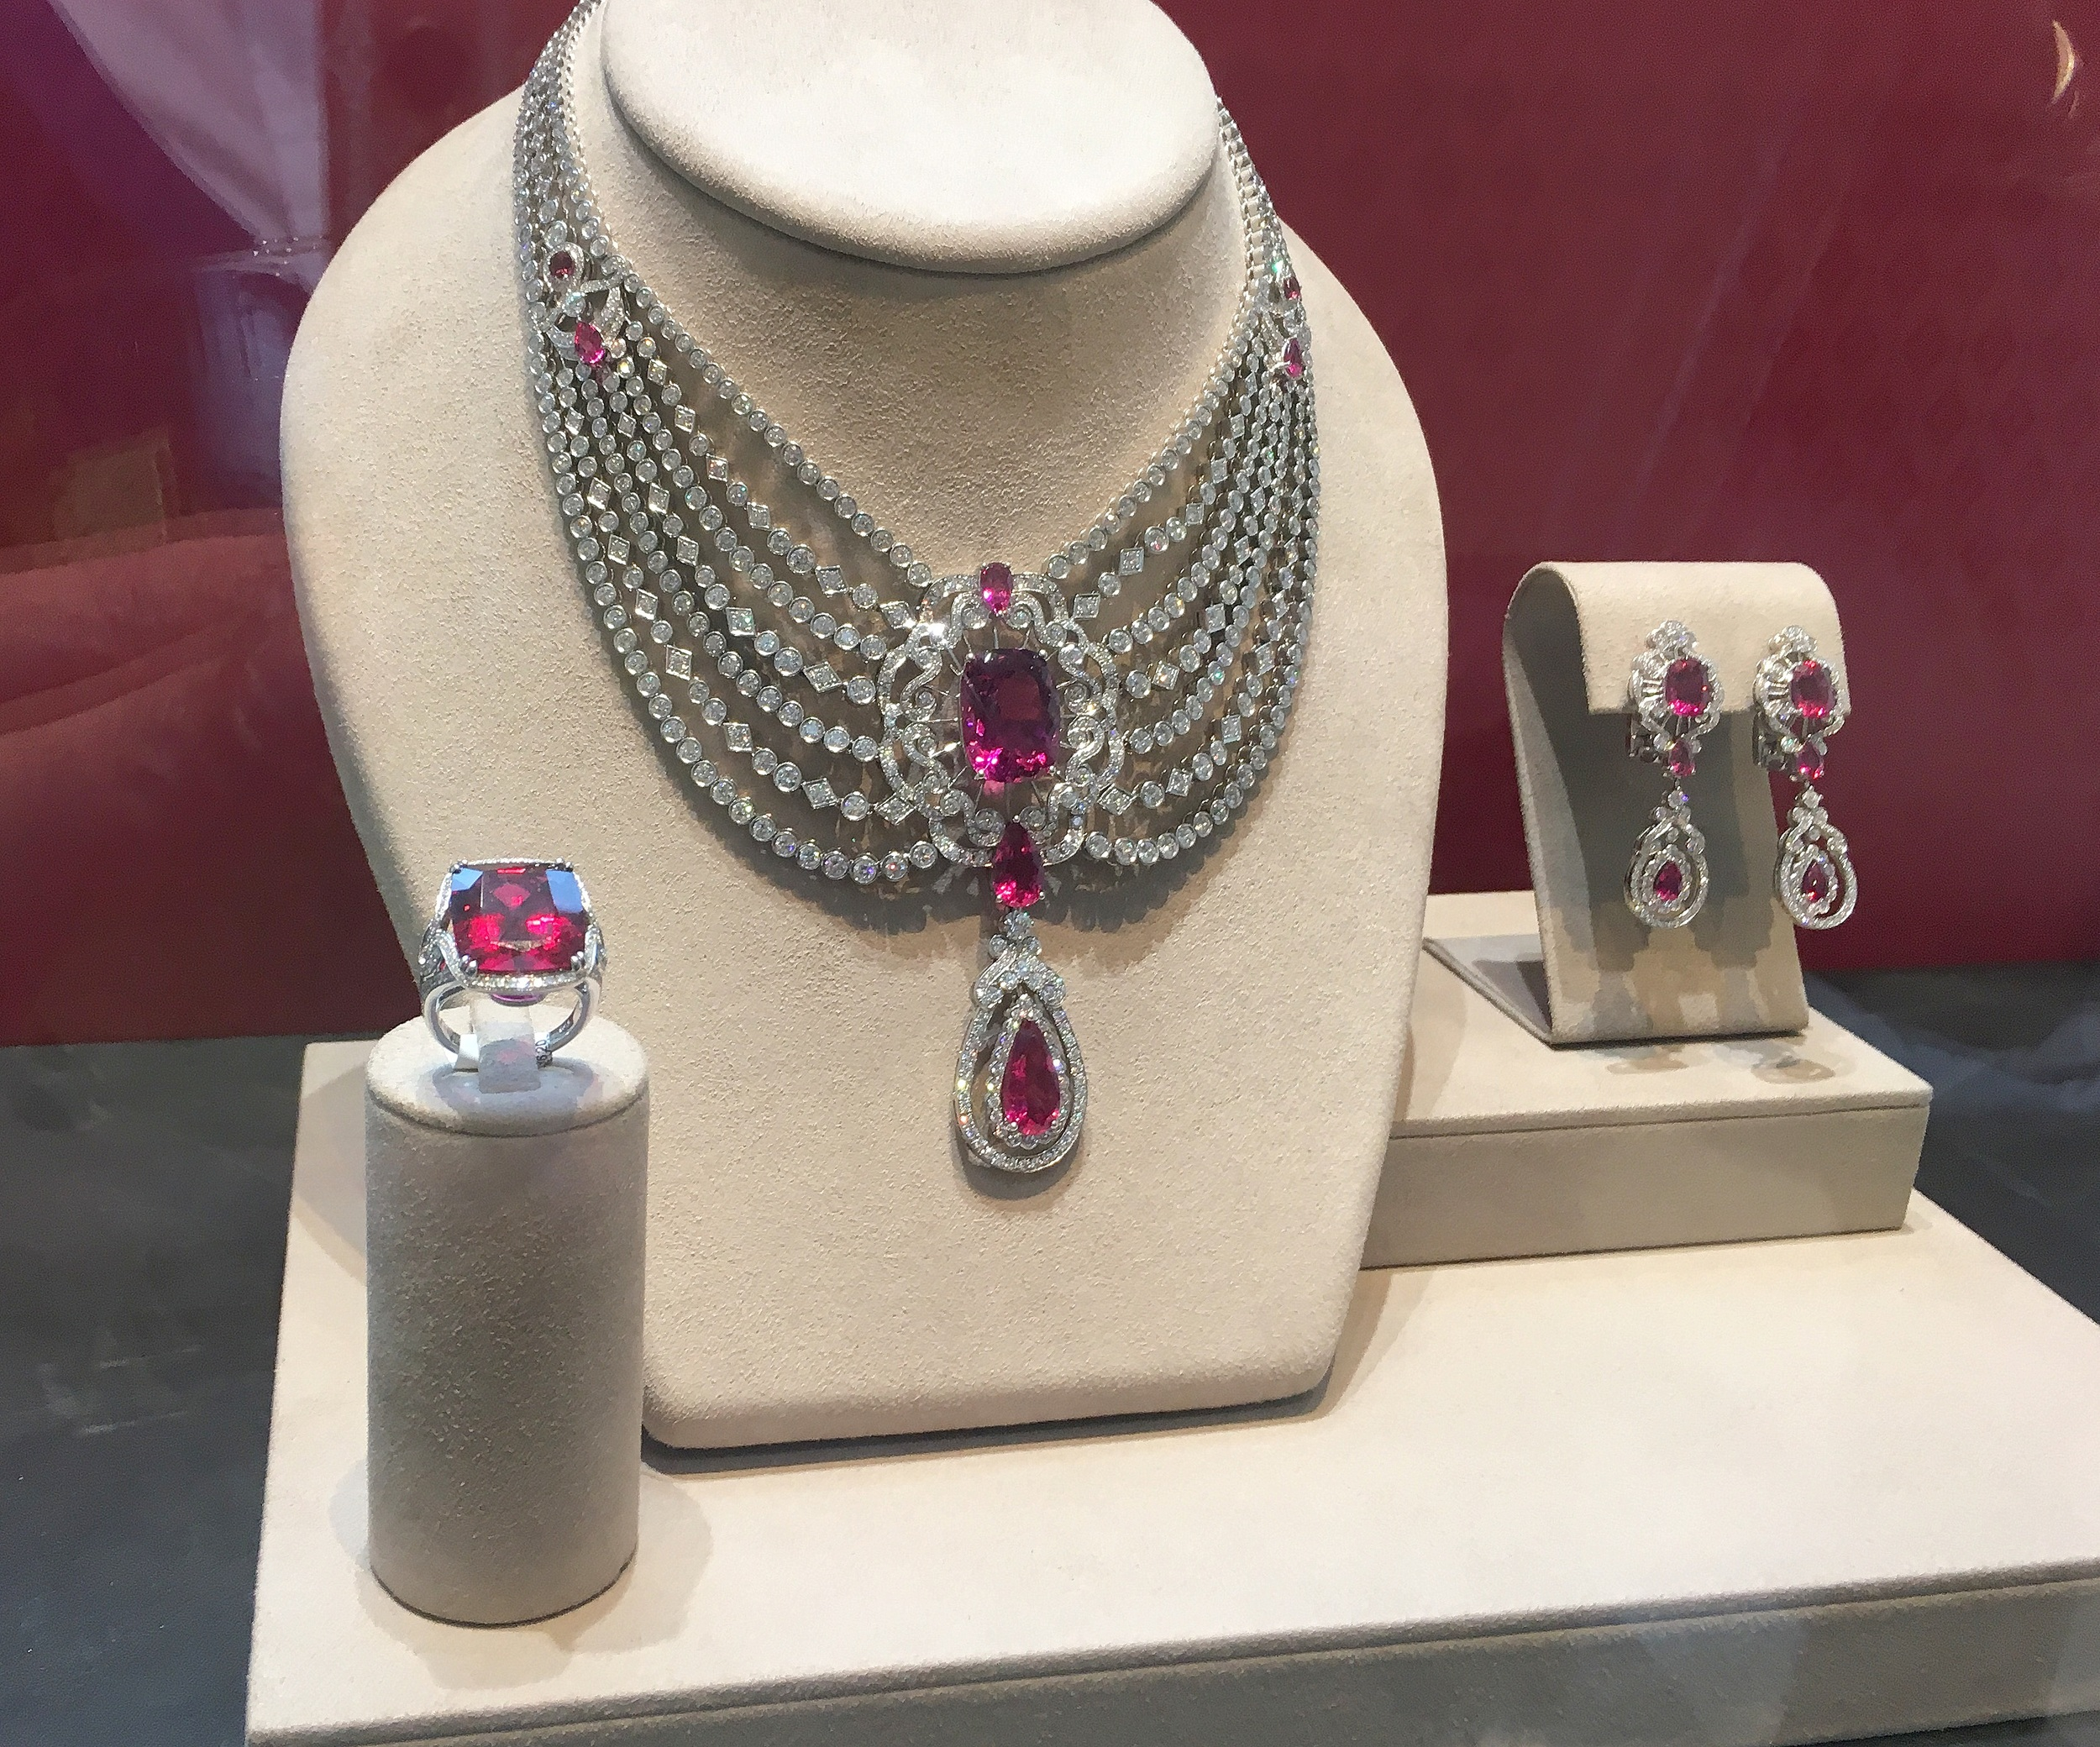 The Peony Suite in rubellites and diamonds.